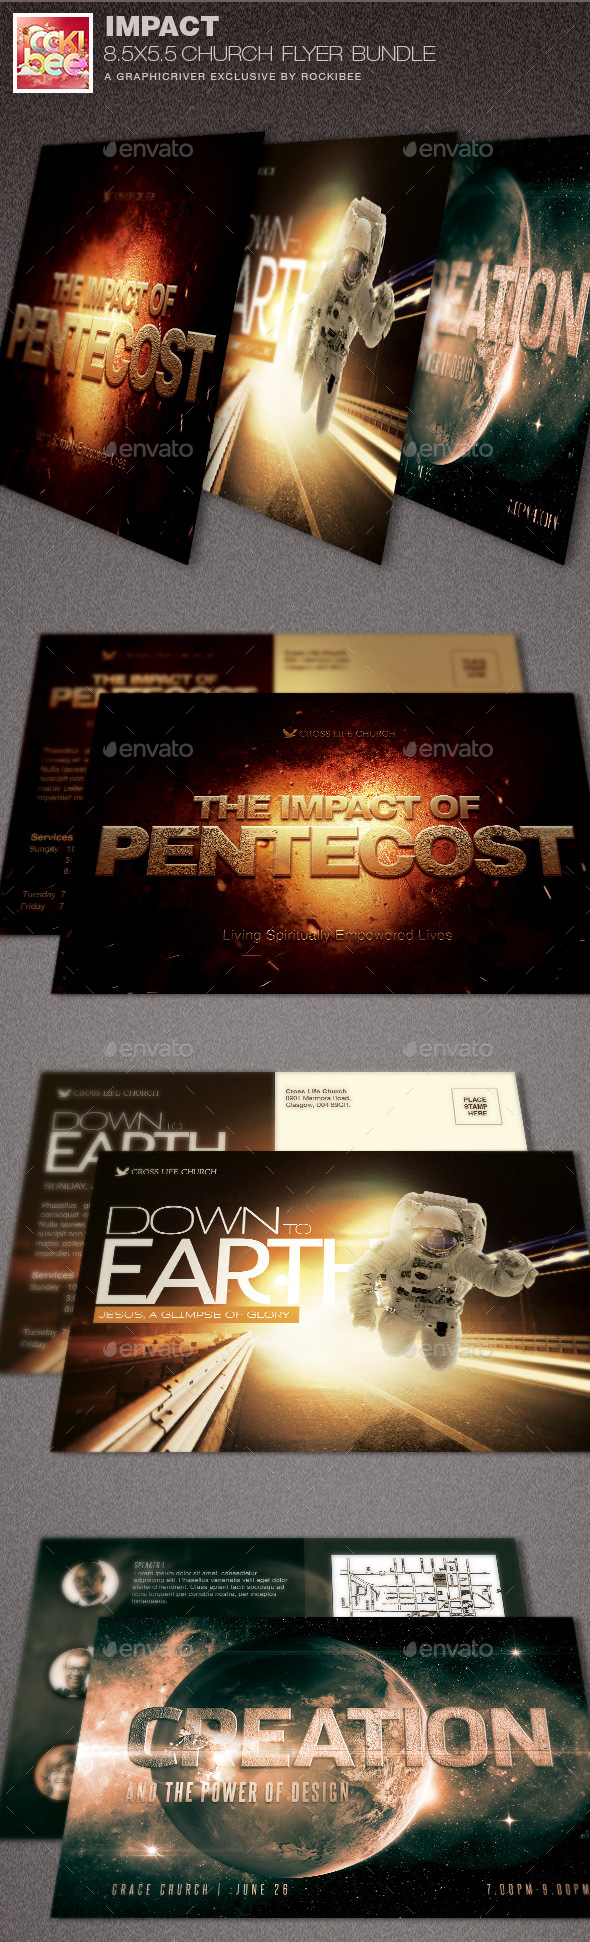 Impact Church Flyer Template Bundle - Church Flyers